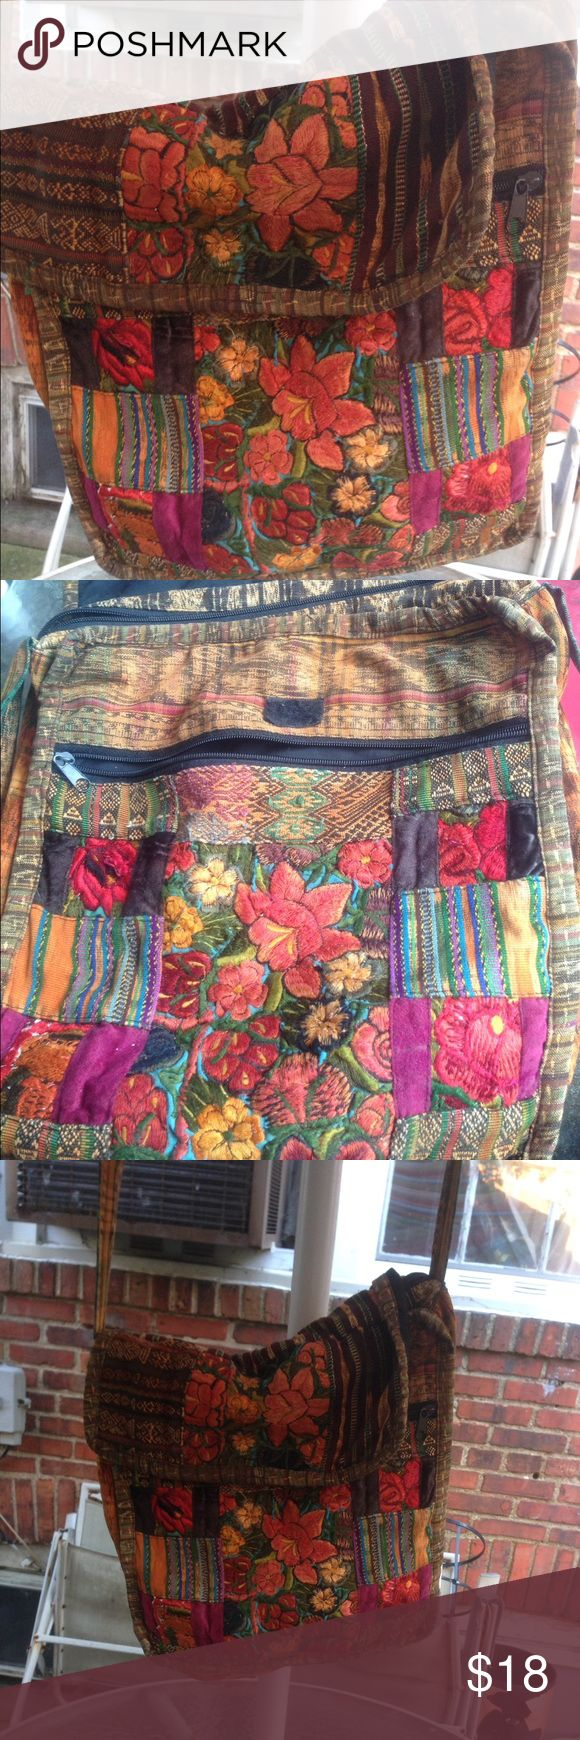 Bo ho chic pocketbook ADORABLE Pattern like new Gentle used bo ho chic purse. Just stunning work. Great for nights out or concerts. Ales a big statement. No rips or tears. Bags Crossbody Bags